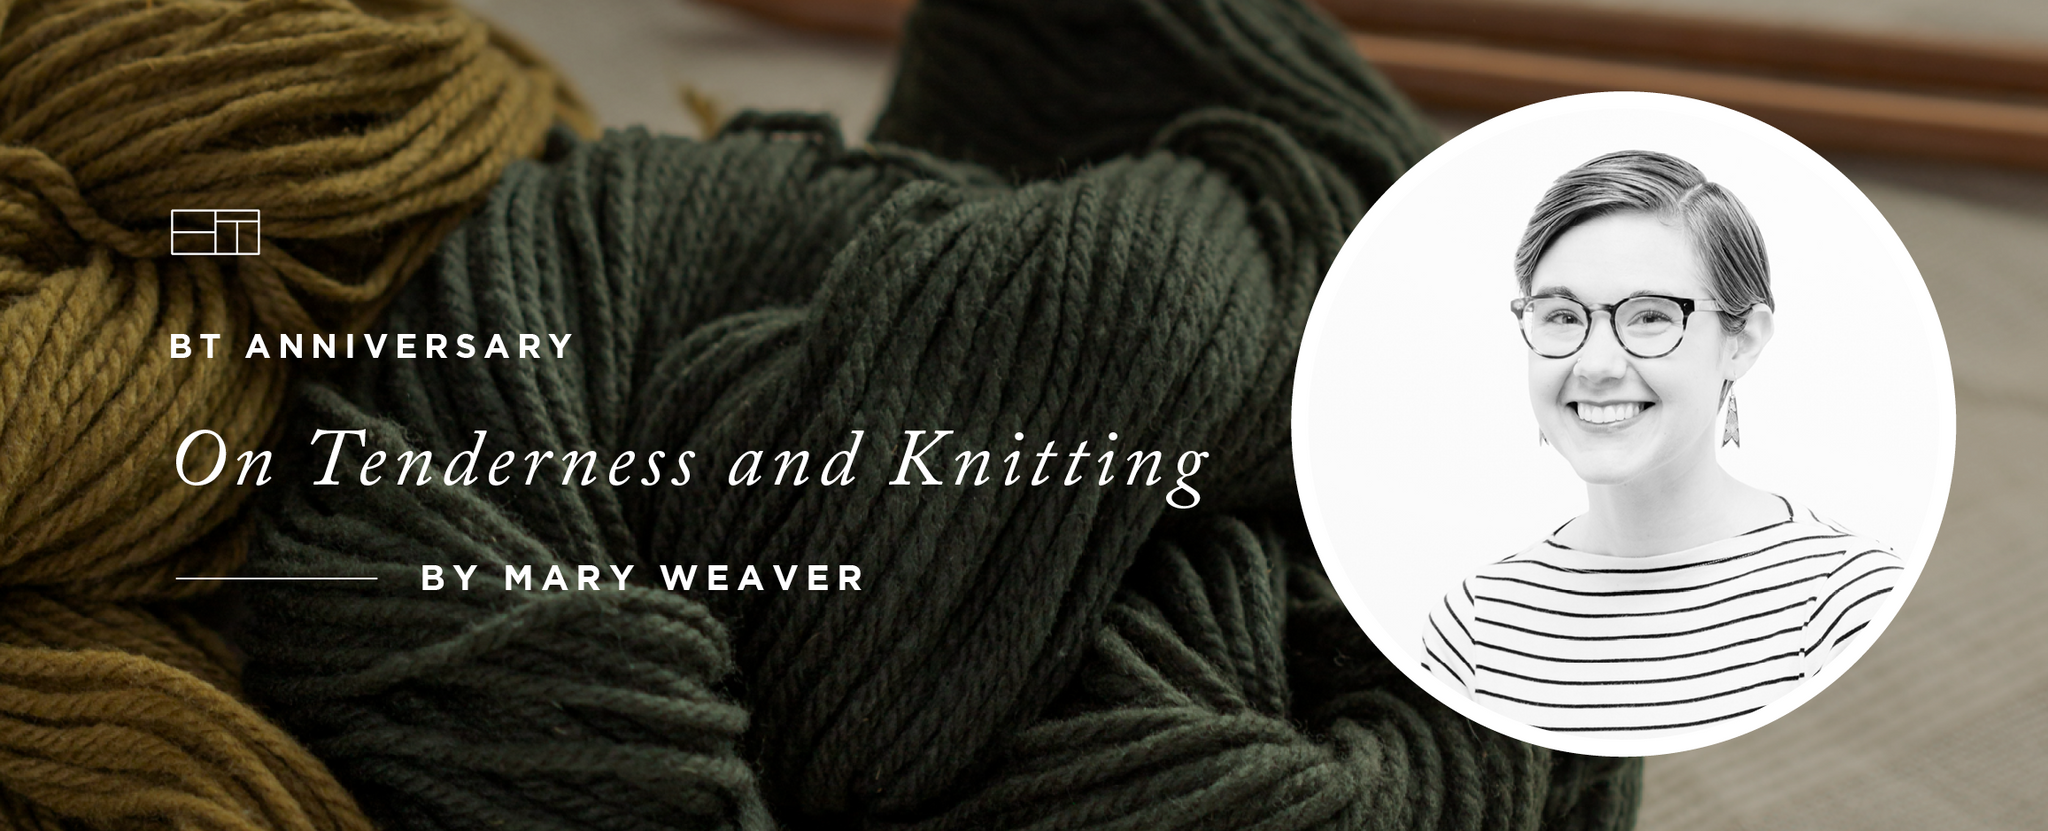 On Tenderness and Knitting